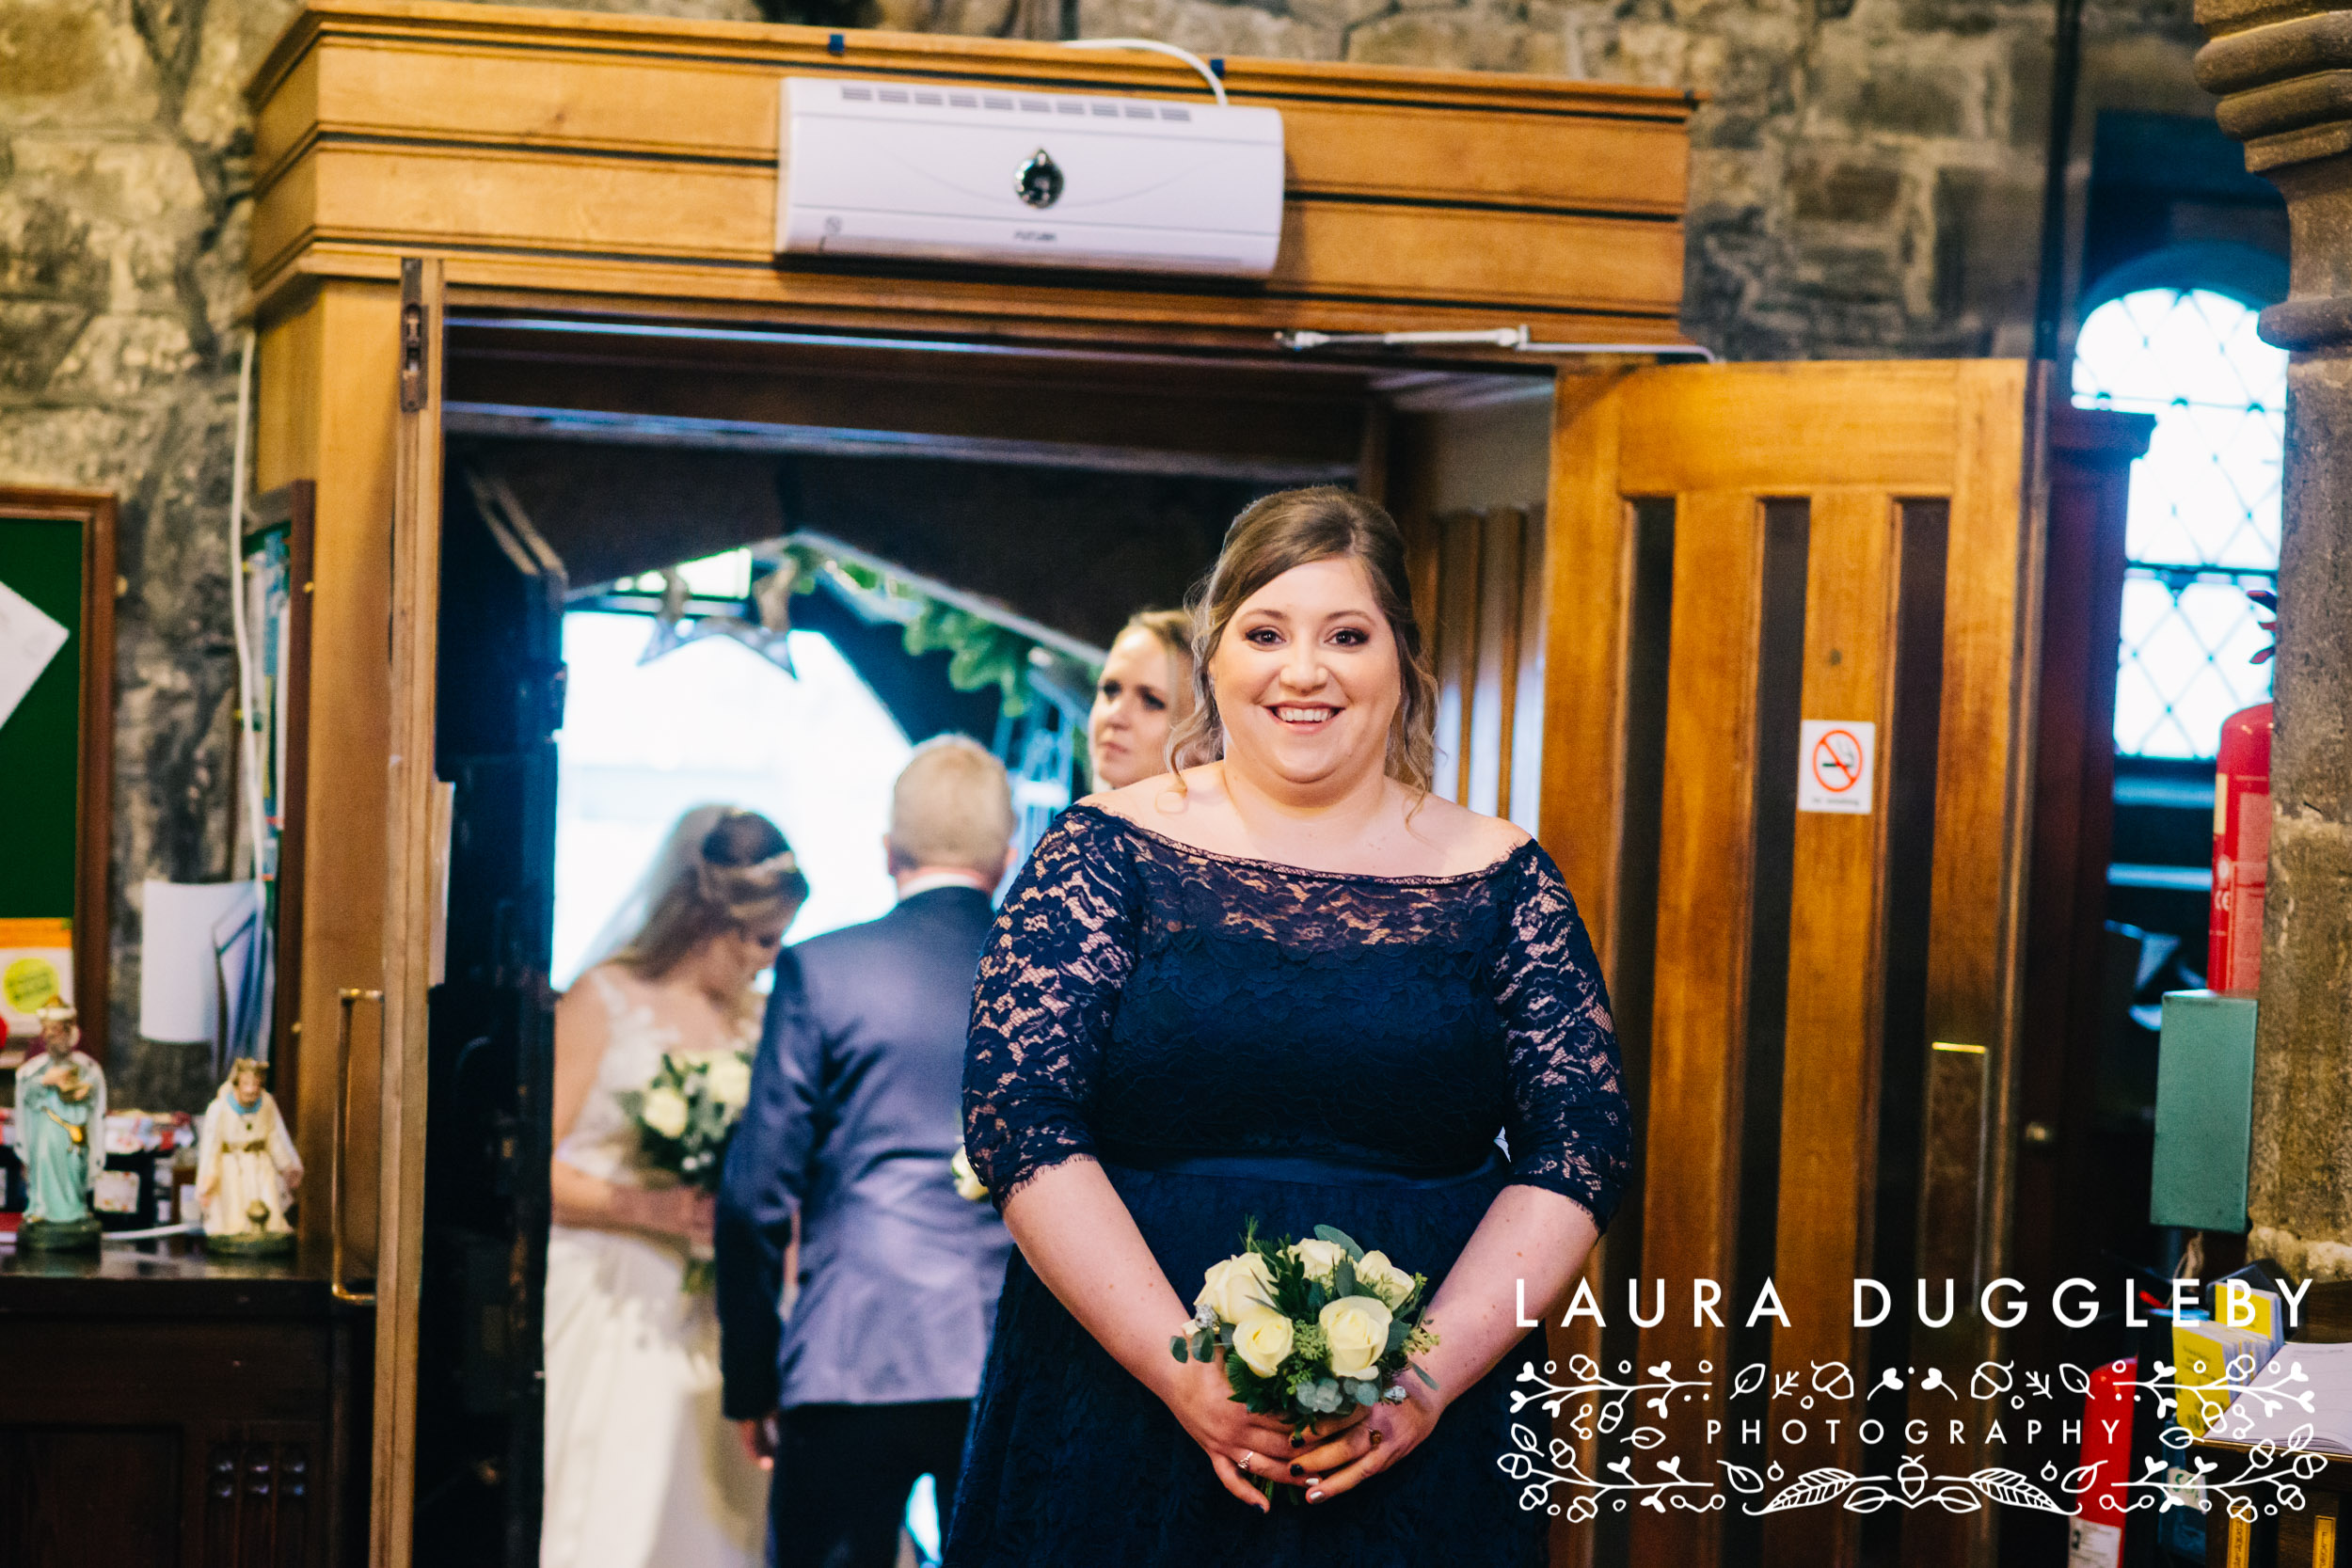 Laura Duggleby Stanley House Wedding Photographer-13.jpg